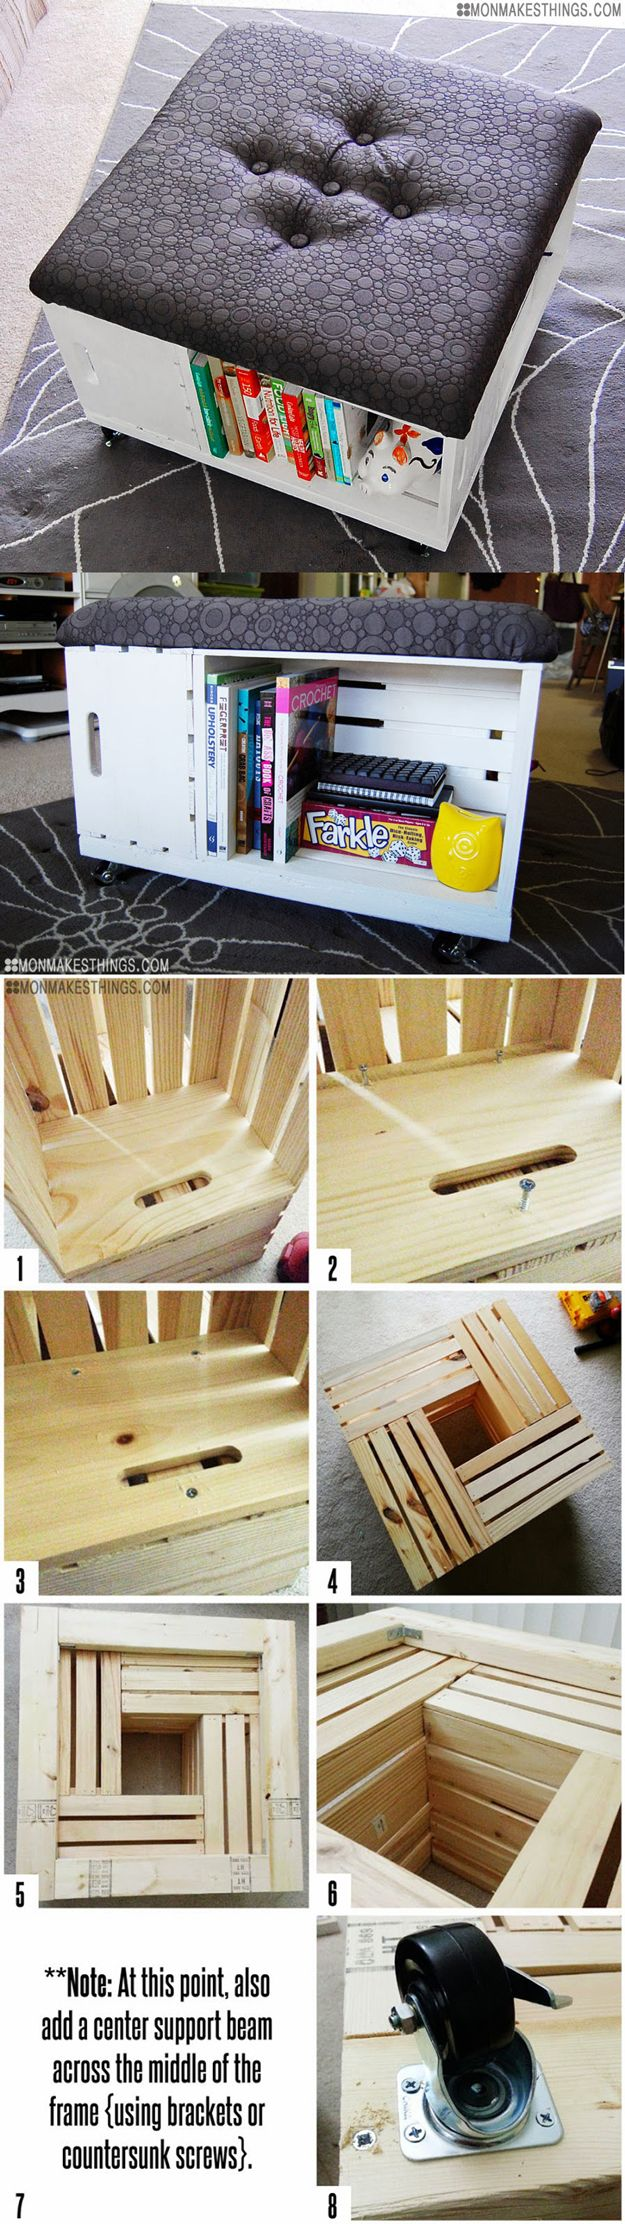 Storage Ottoman DIY | Simple and Fun DIY Home Decor Tutorial for Renters by DIY Ready at http://diyready.com/diy-room-decor-ideas-for-renters/